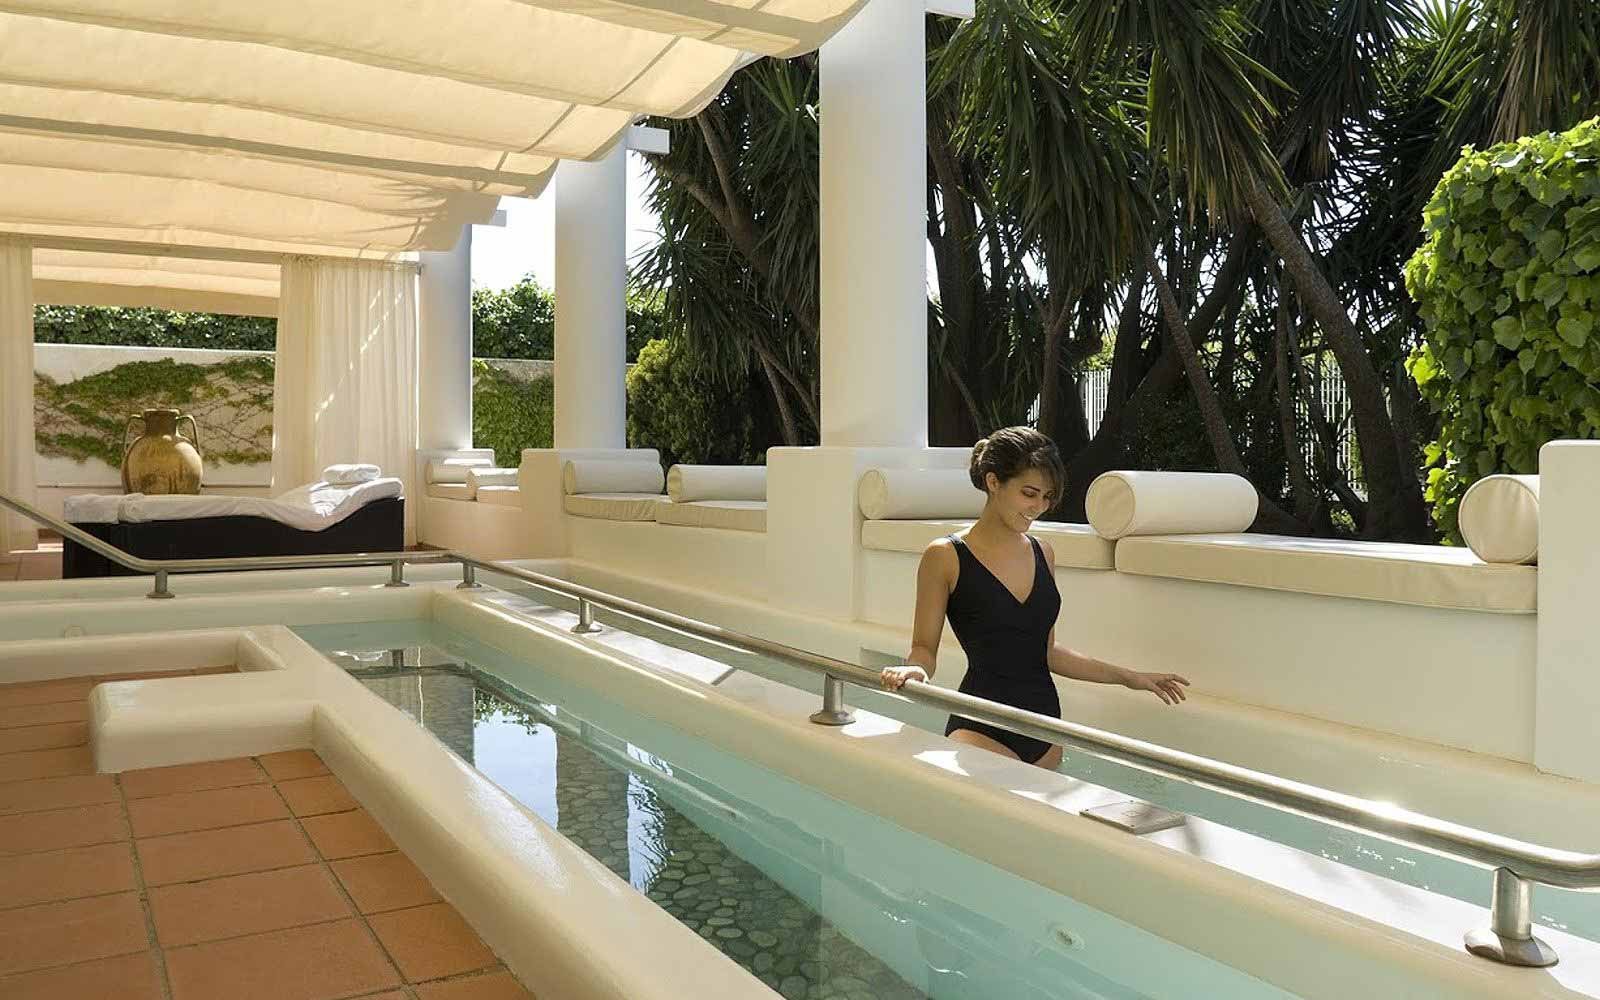 Spa at Capri Palace Hotel & Spa